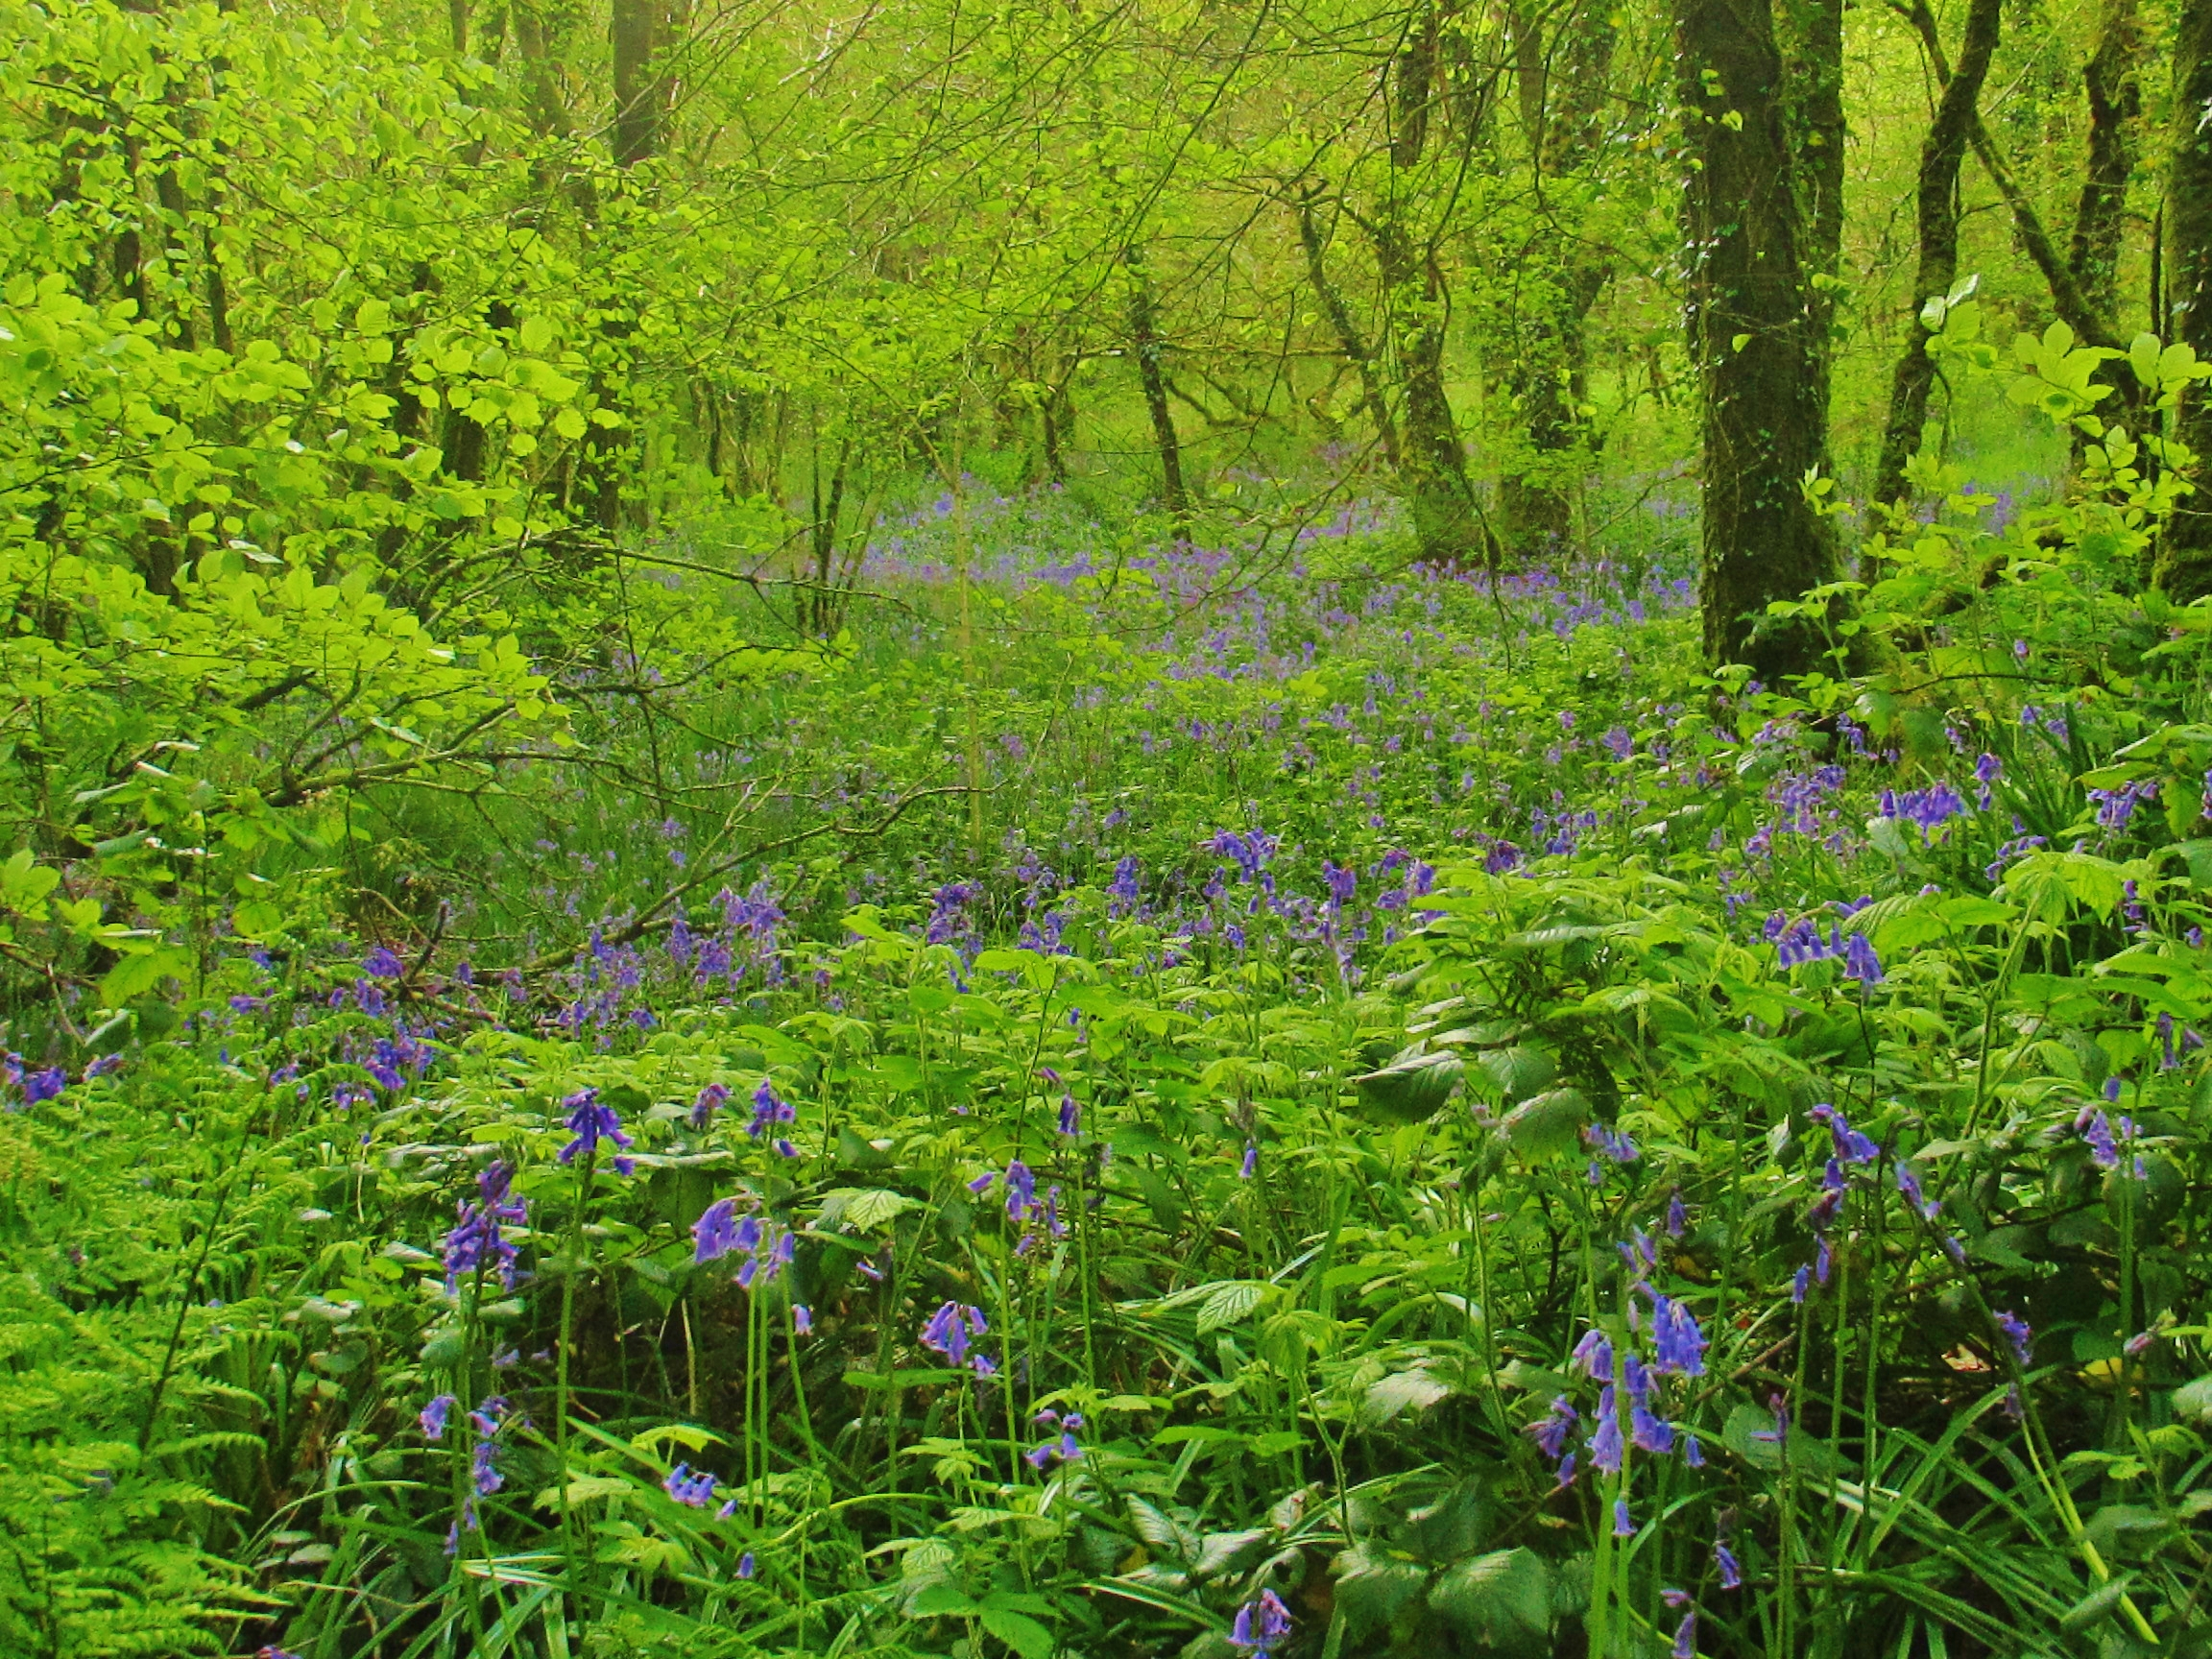 More Bluebells